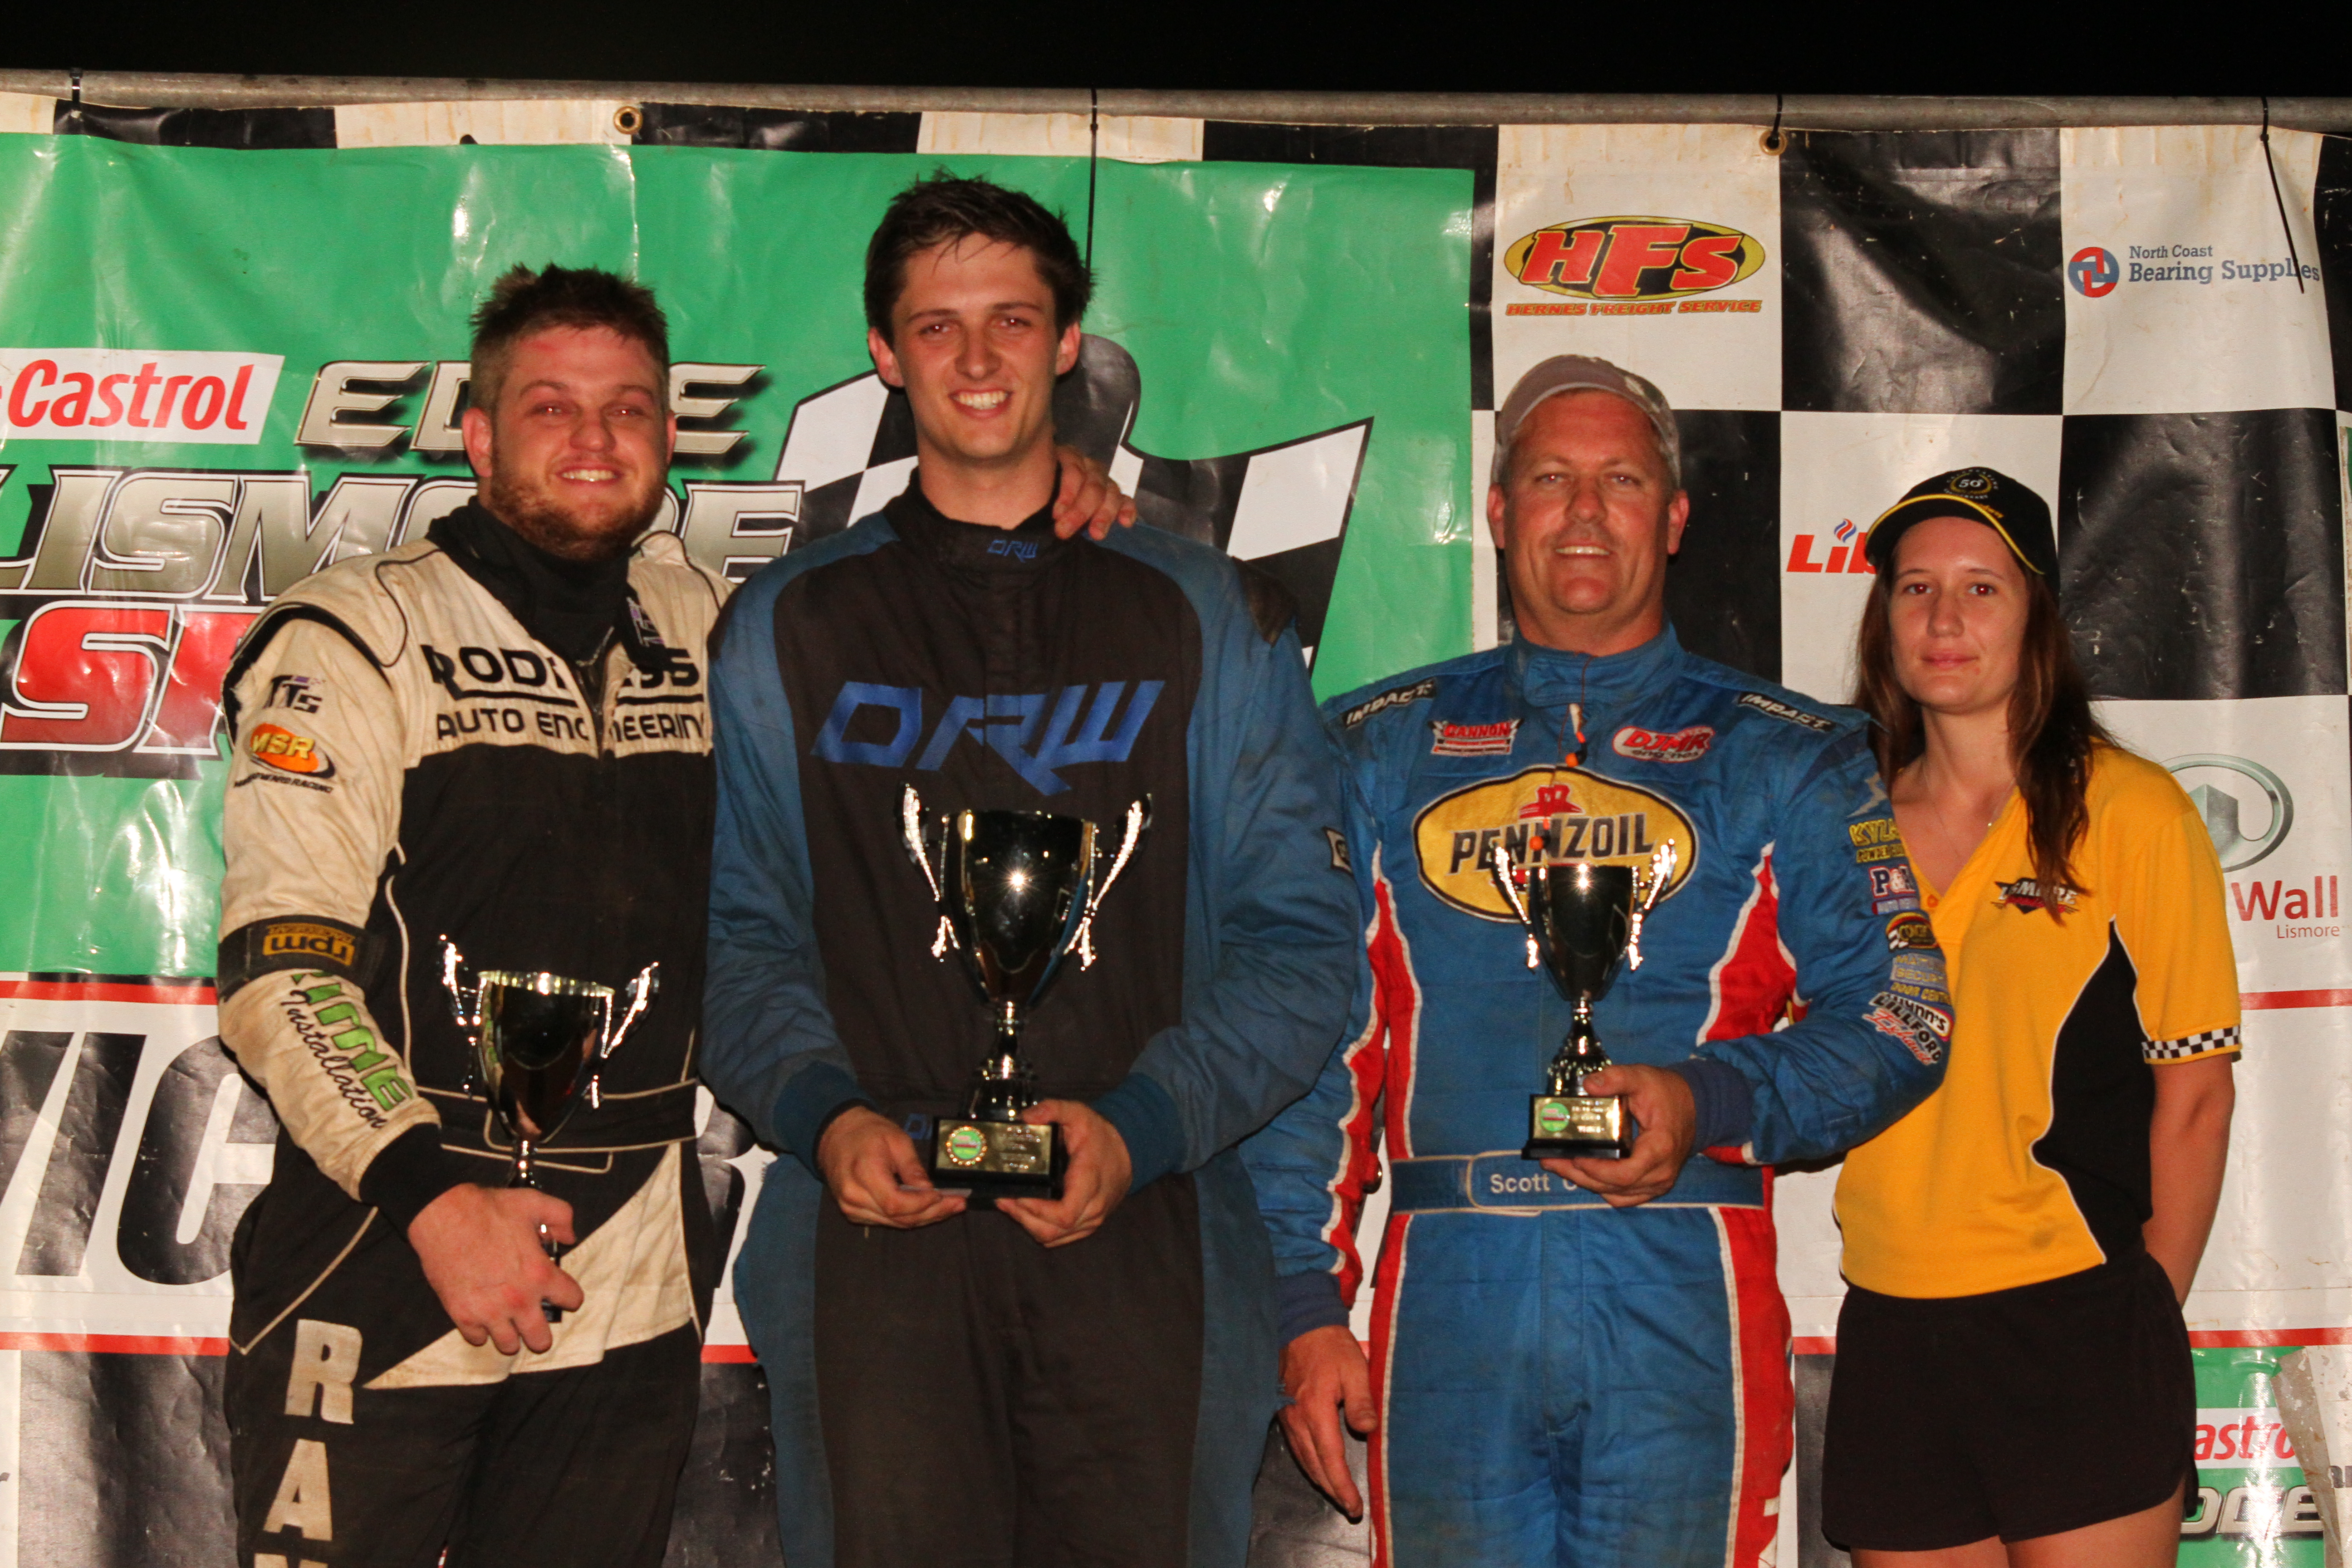 mr modified - Mitch Randall left Josh Rose and Scott Cannon - Stephenson crowned Mr Modified series champ